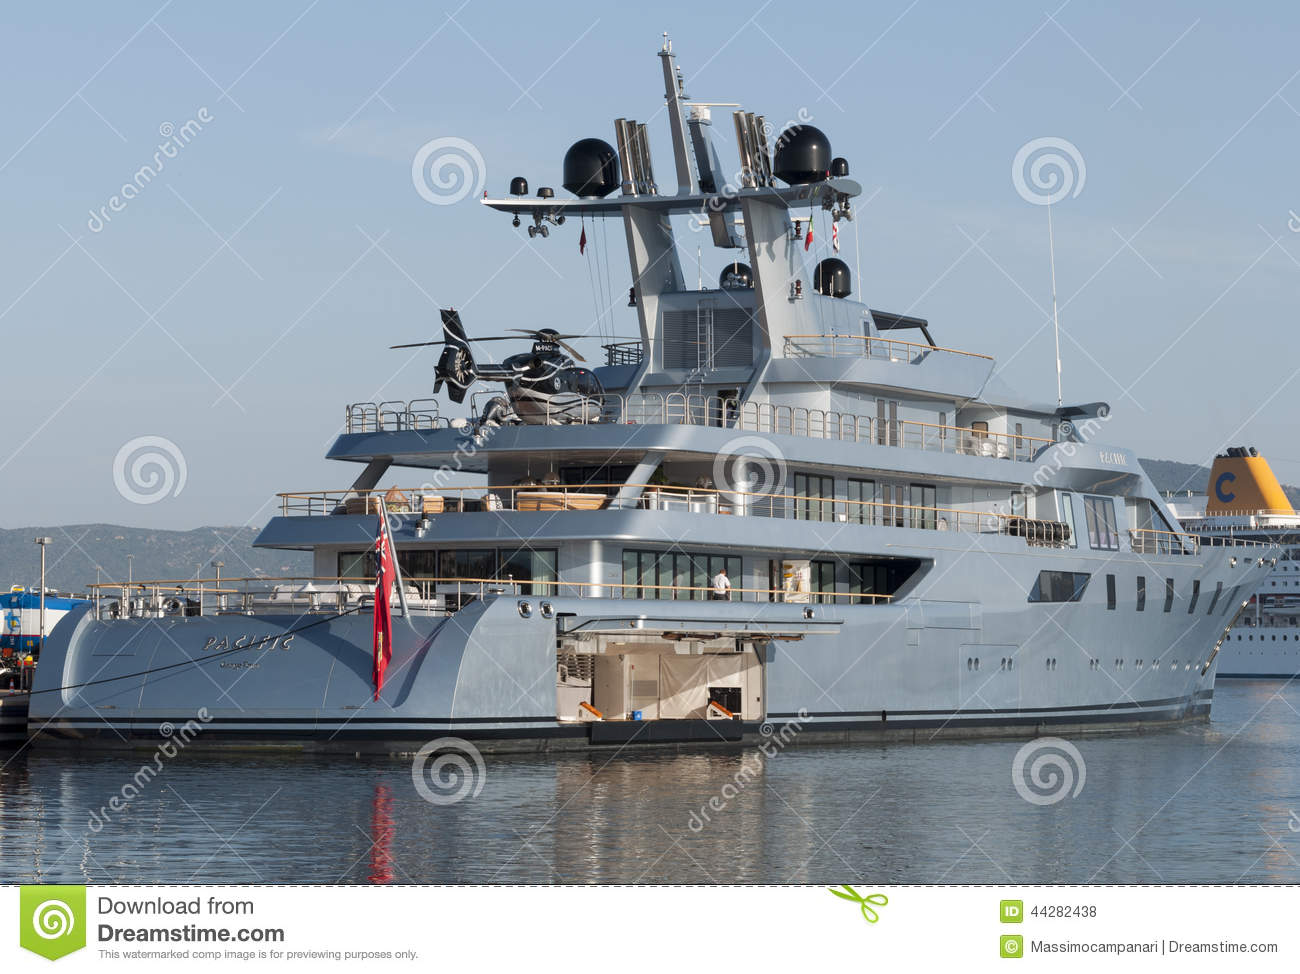 Yacht Con Elicottero : Yacht with helicopter editorial stock photo image of